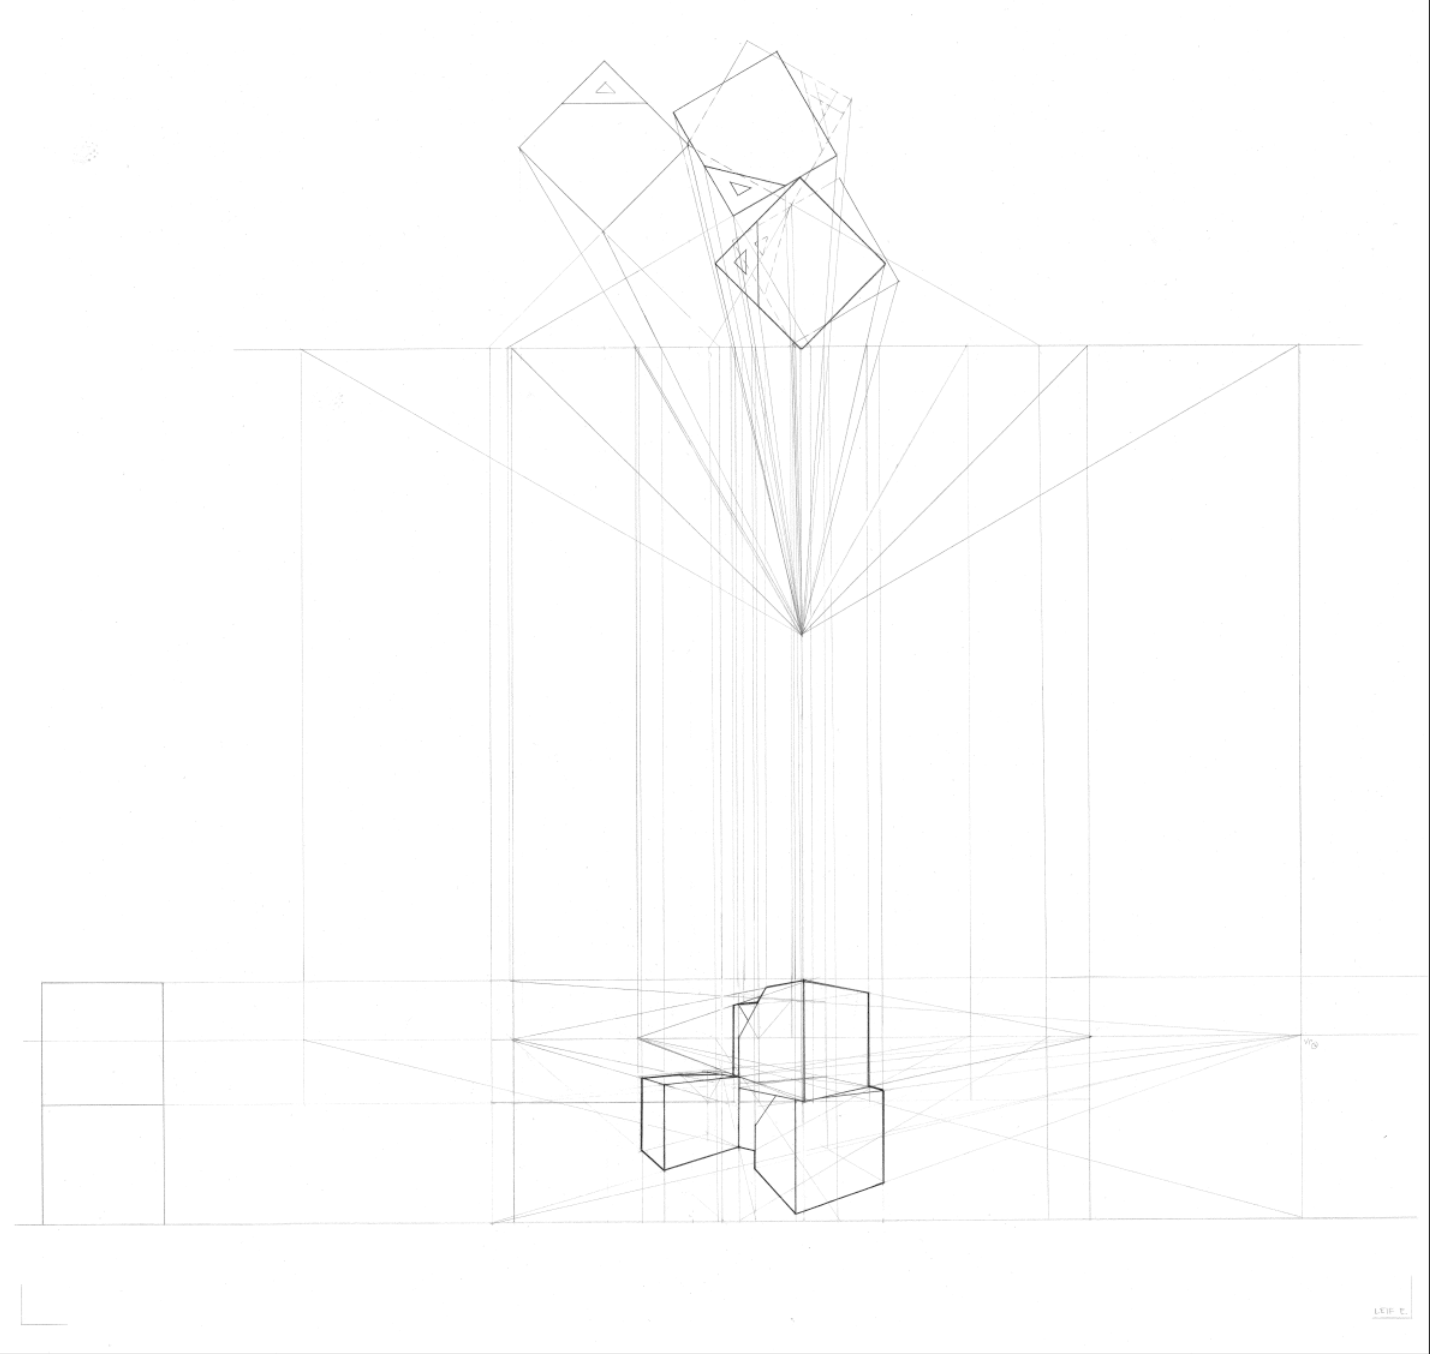 VI - Two-Point Perspective